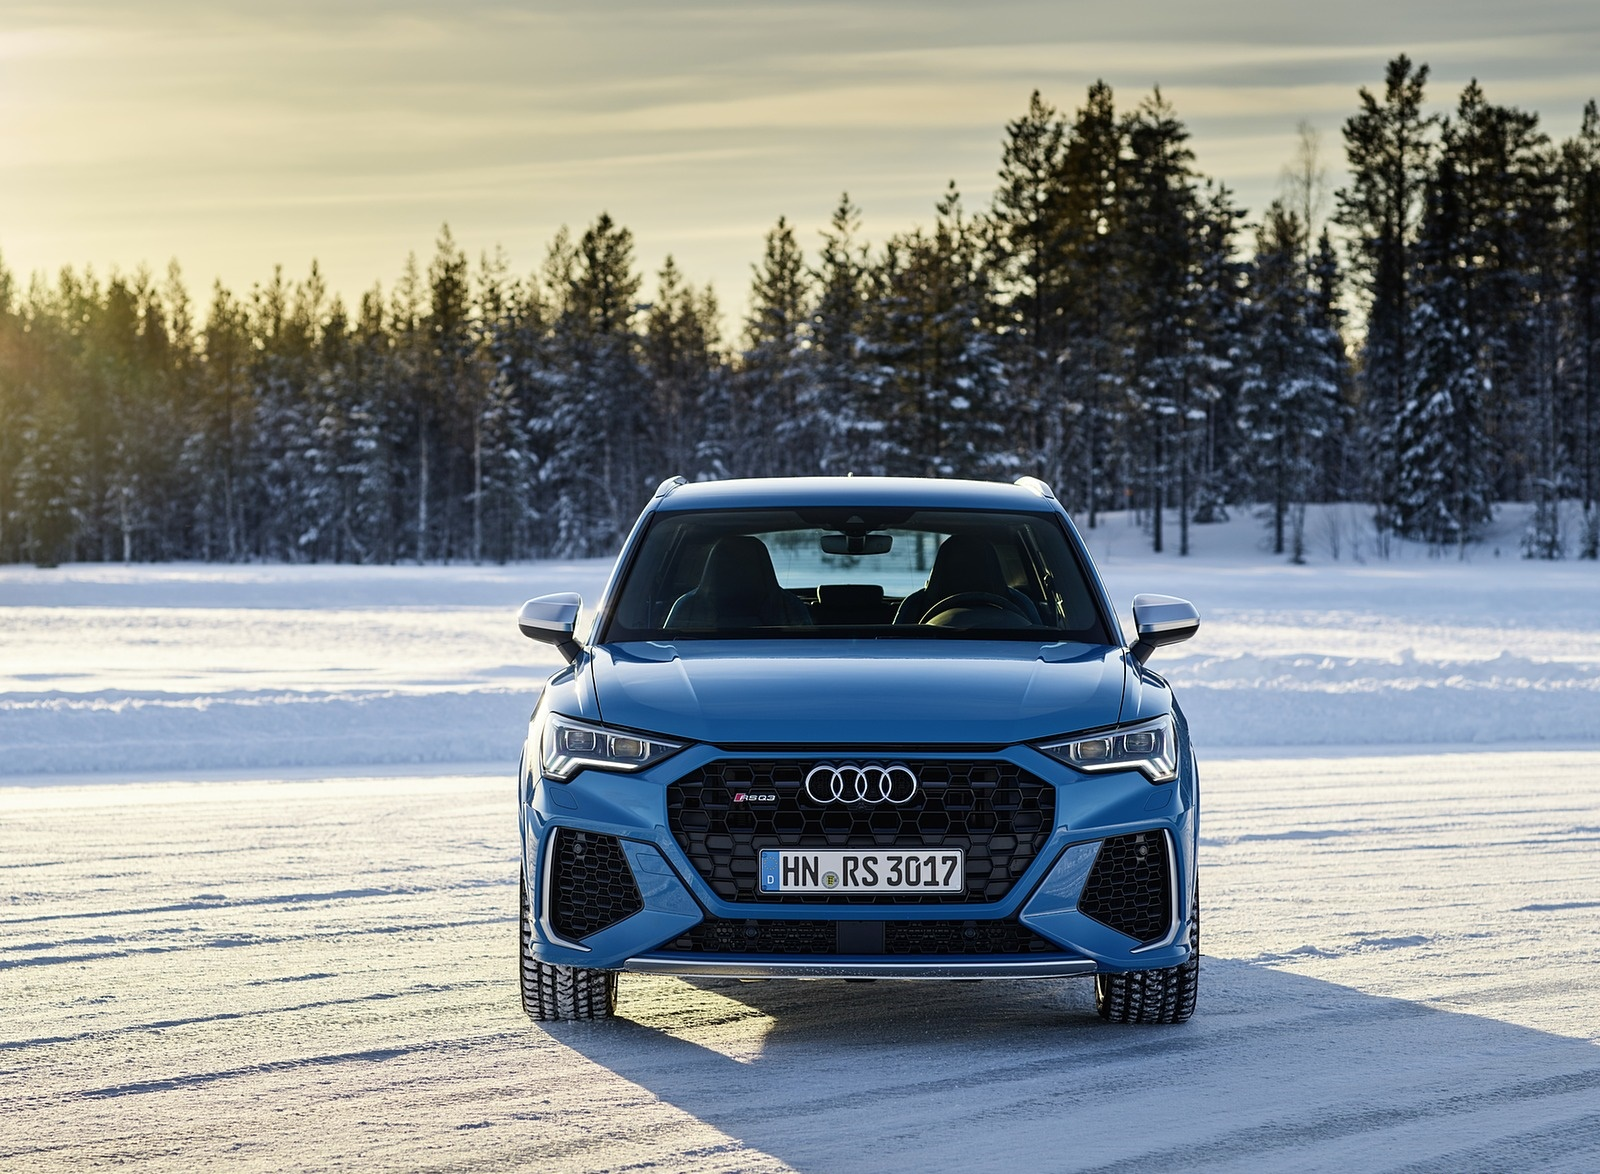 2020 Audi RS Q3 (Color: Turbo Blue) Front Wallpapers #46 of 116